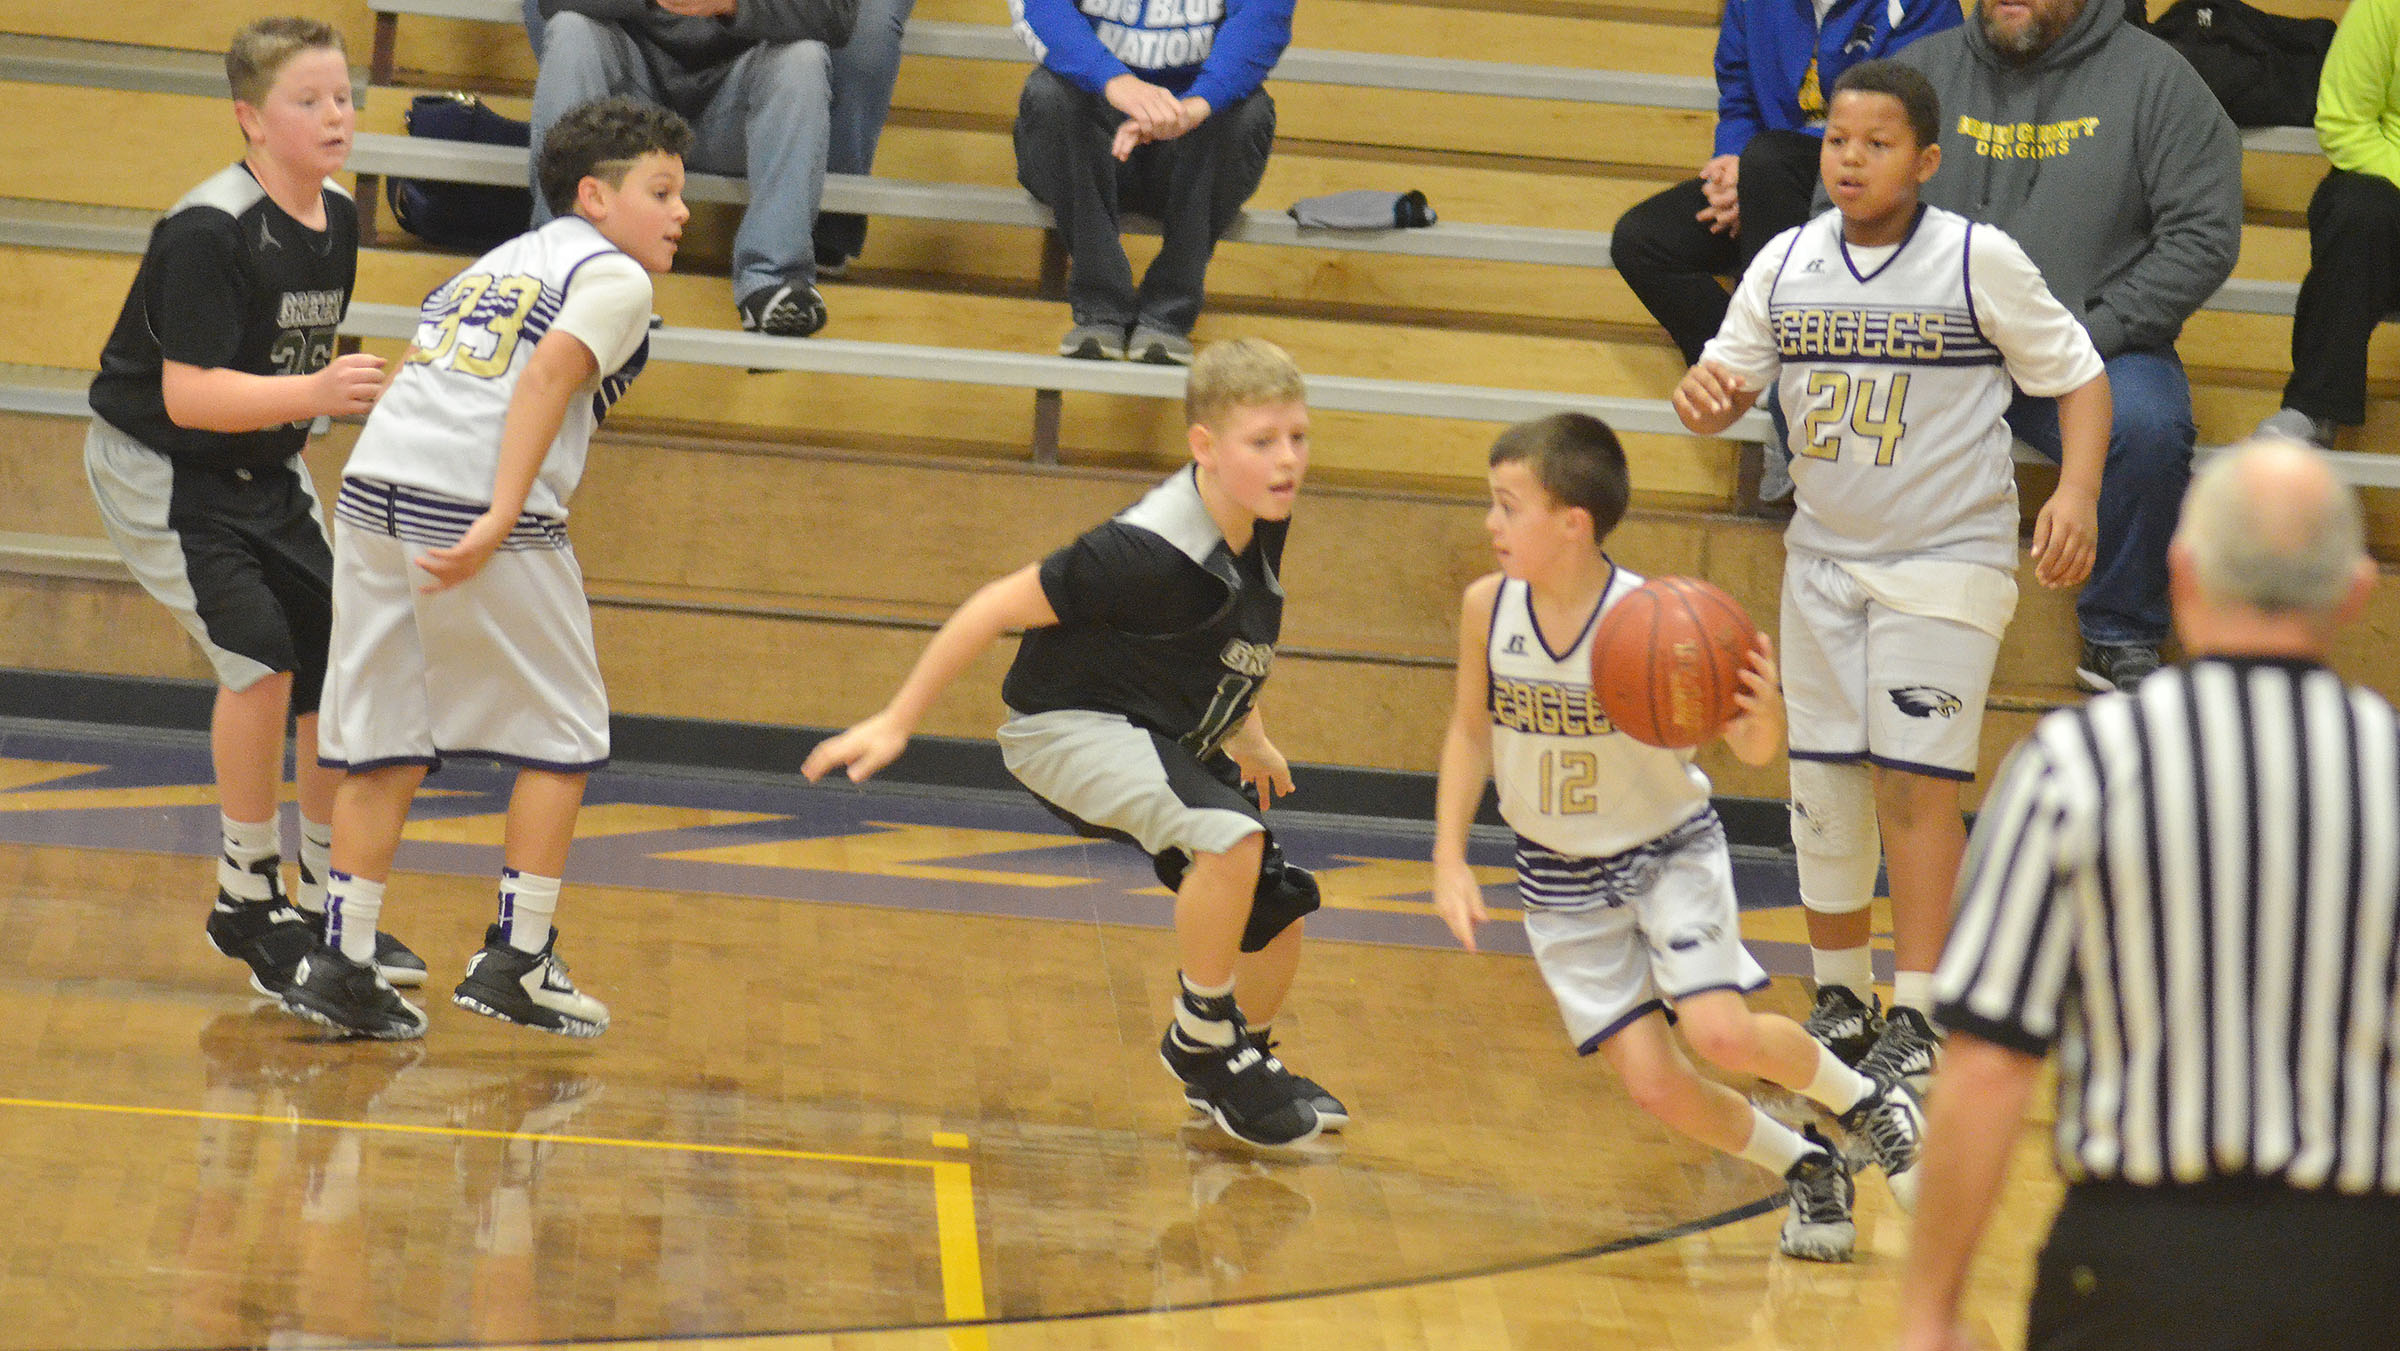 CMS sixth-grader Chase Hord sets up a play.